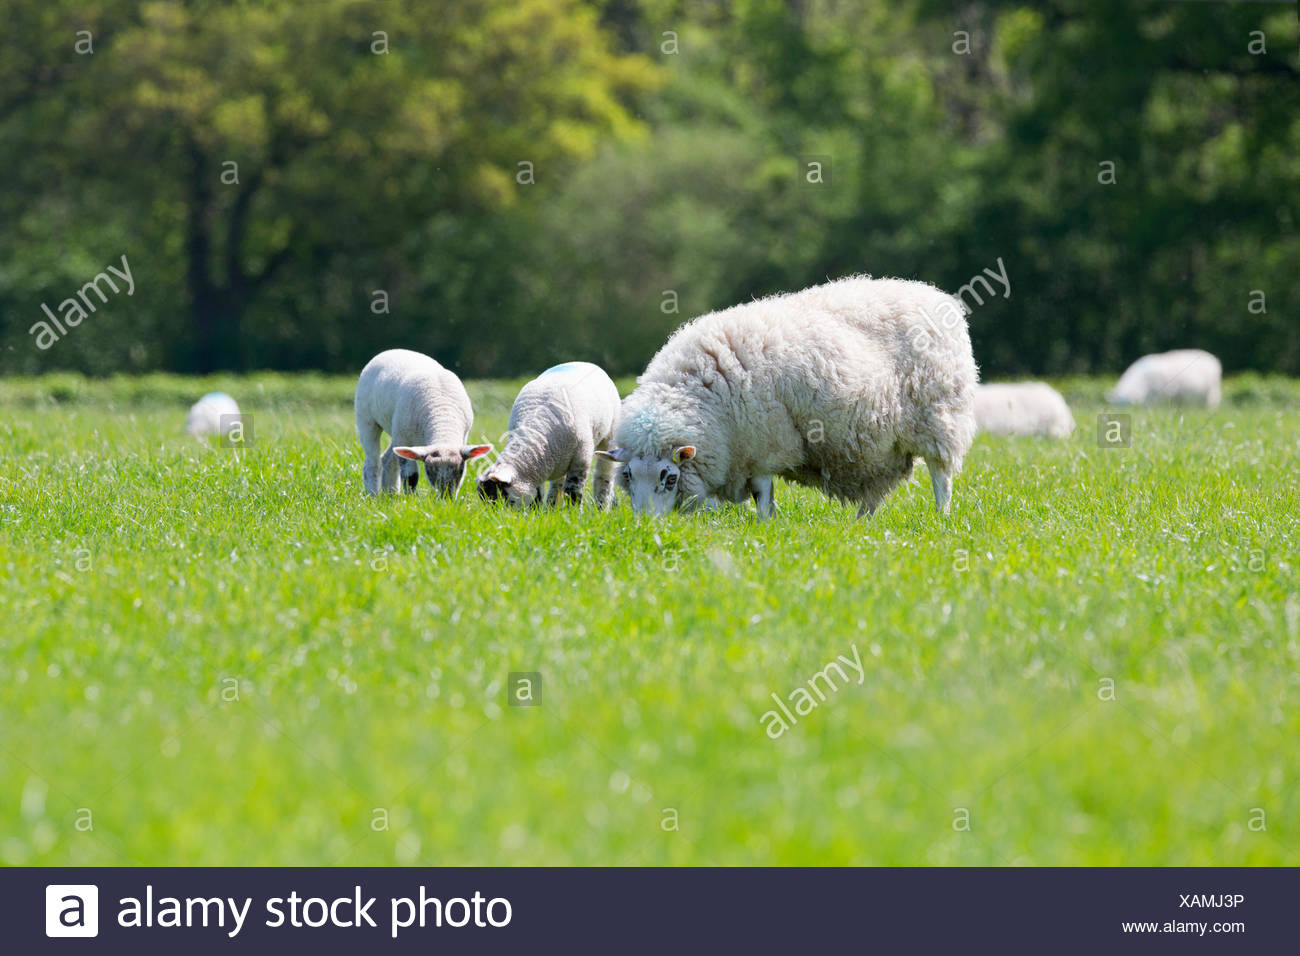 Sheep and lambs grazing in sunny green spring field - Stock Image